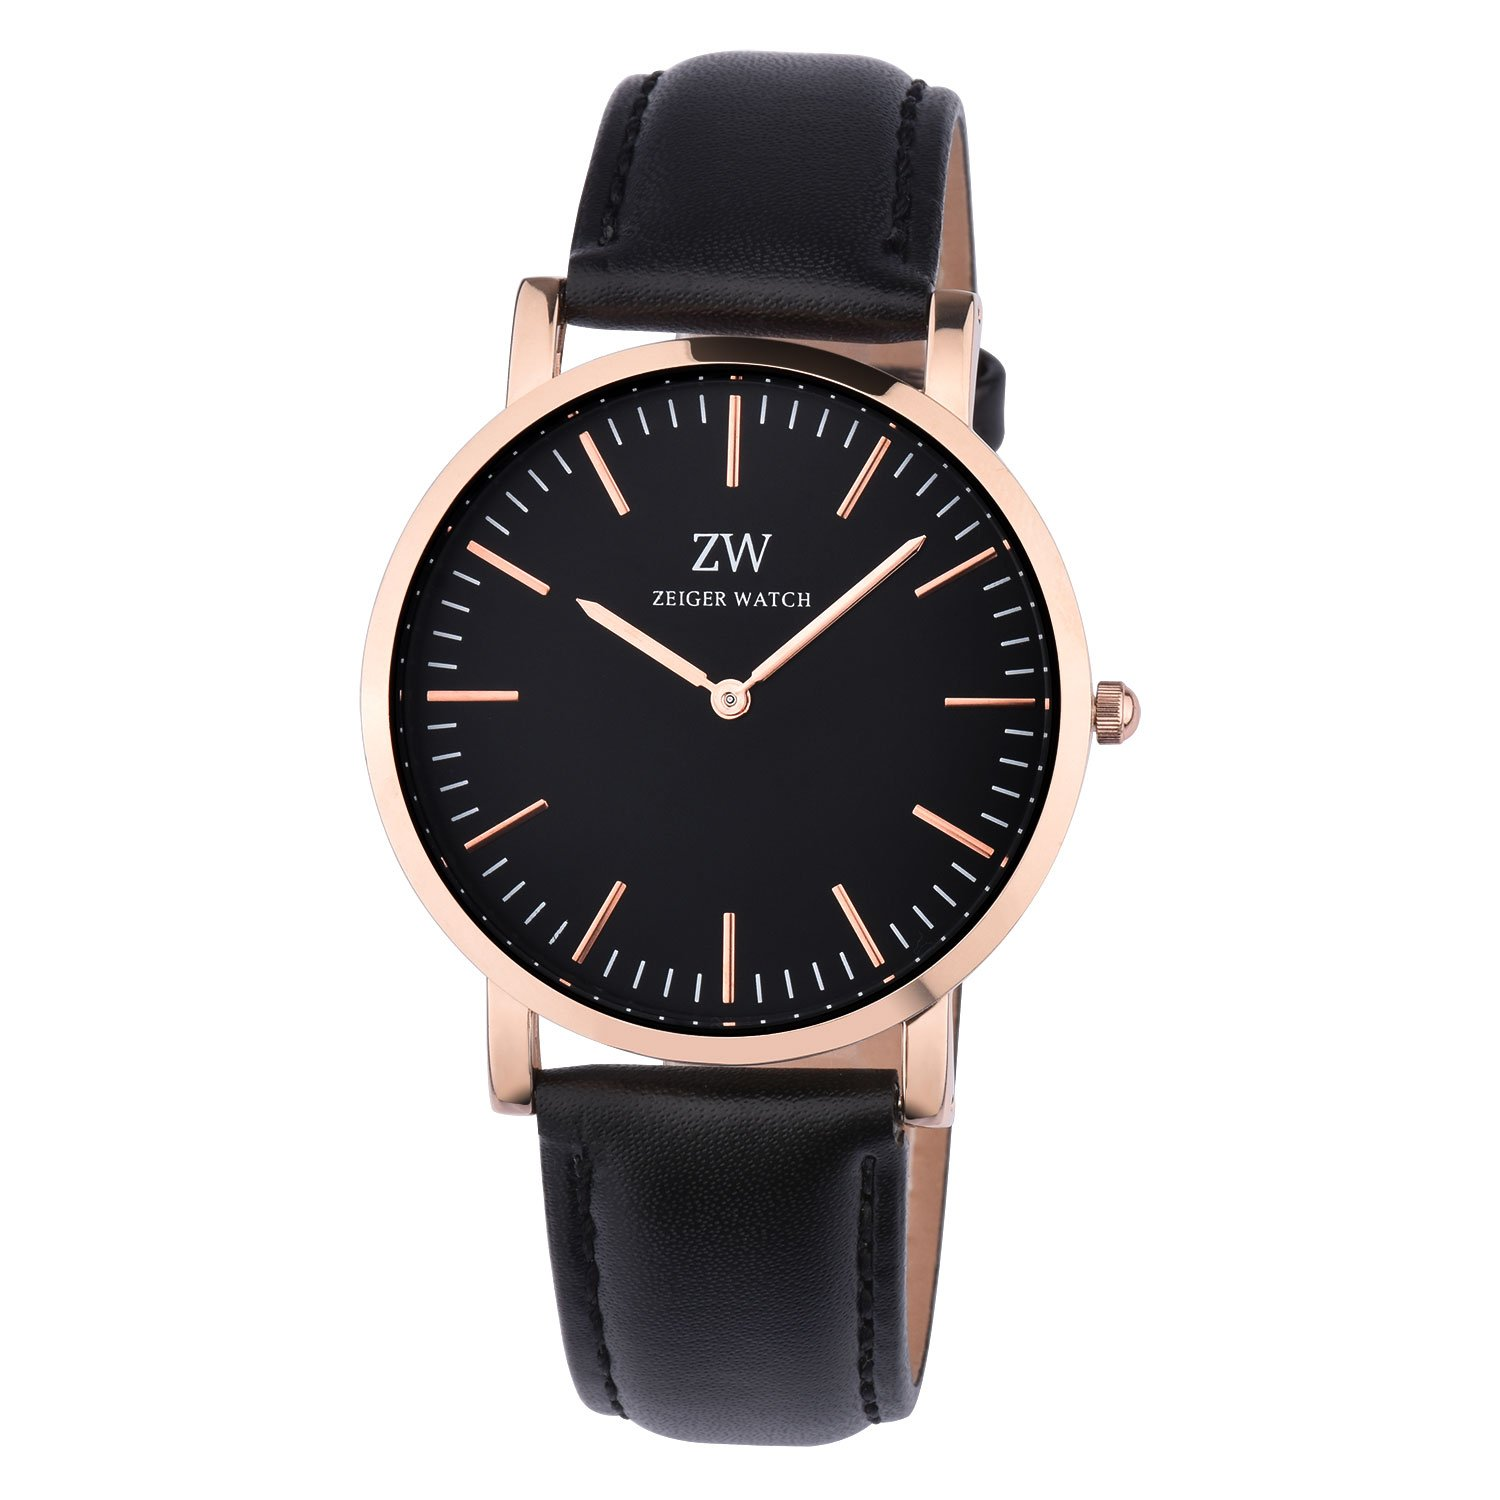 add image free bogo to watches products deal watch minimalist simplistic simple cyber product must cart monday collections deals